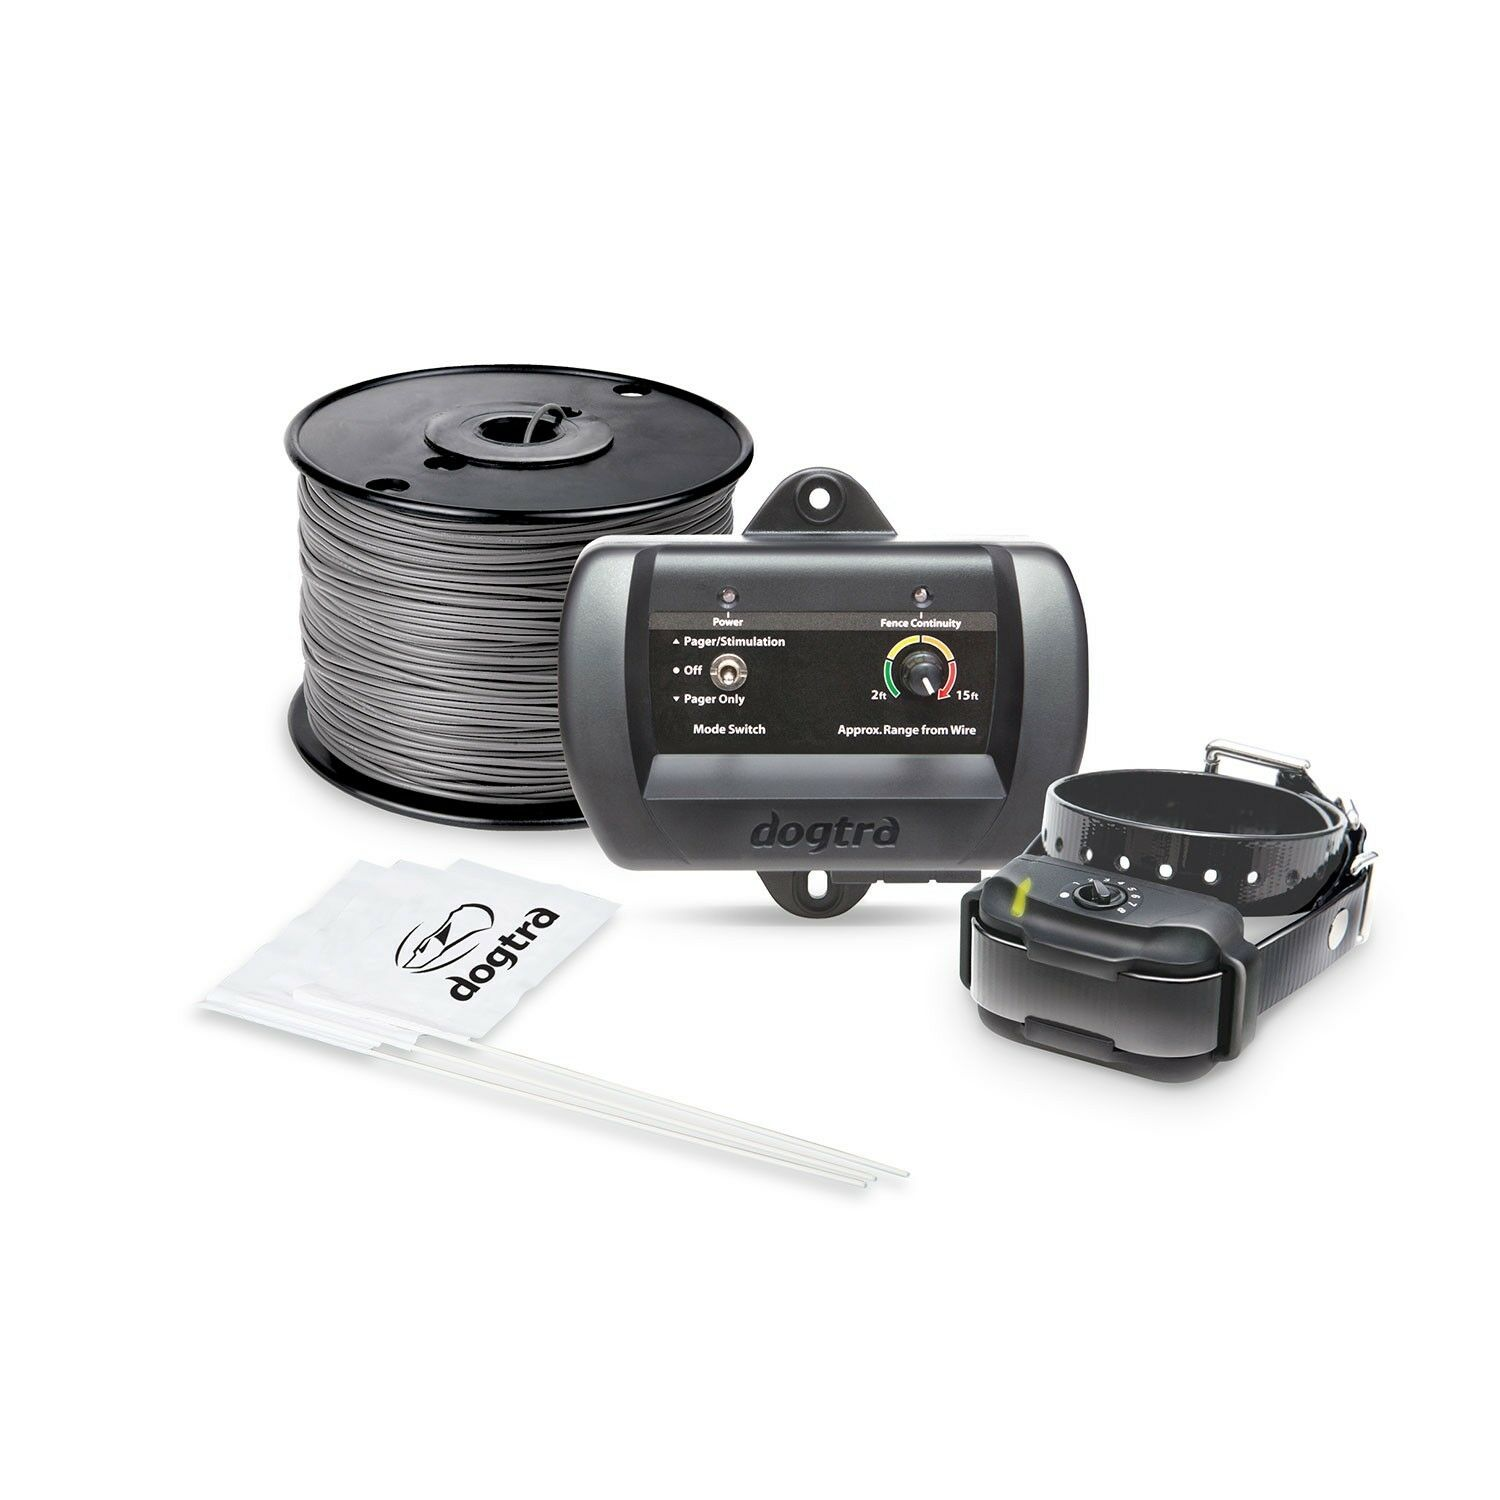 Dogtra Dogtra Dogtra Rechargeable EF3500 E-fence Underground Wire & flags ff9b81